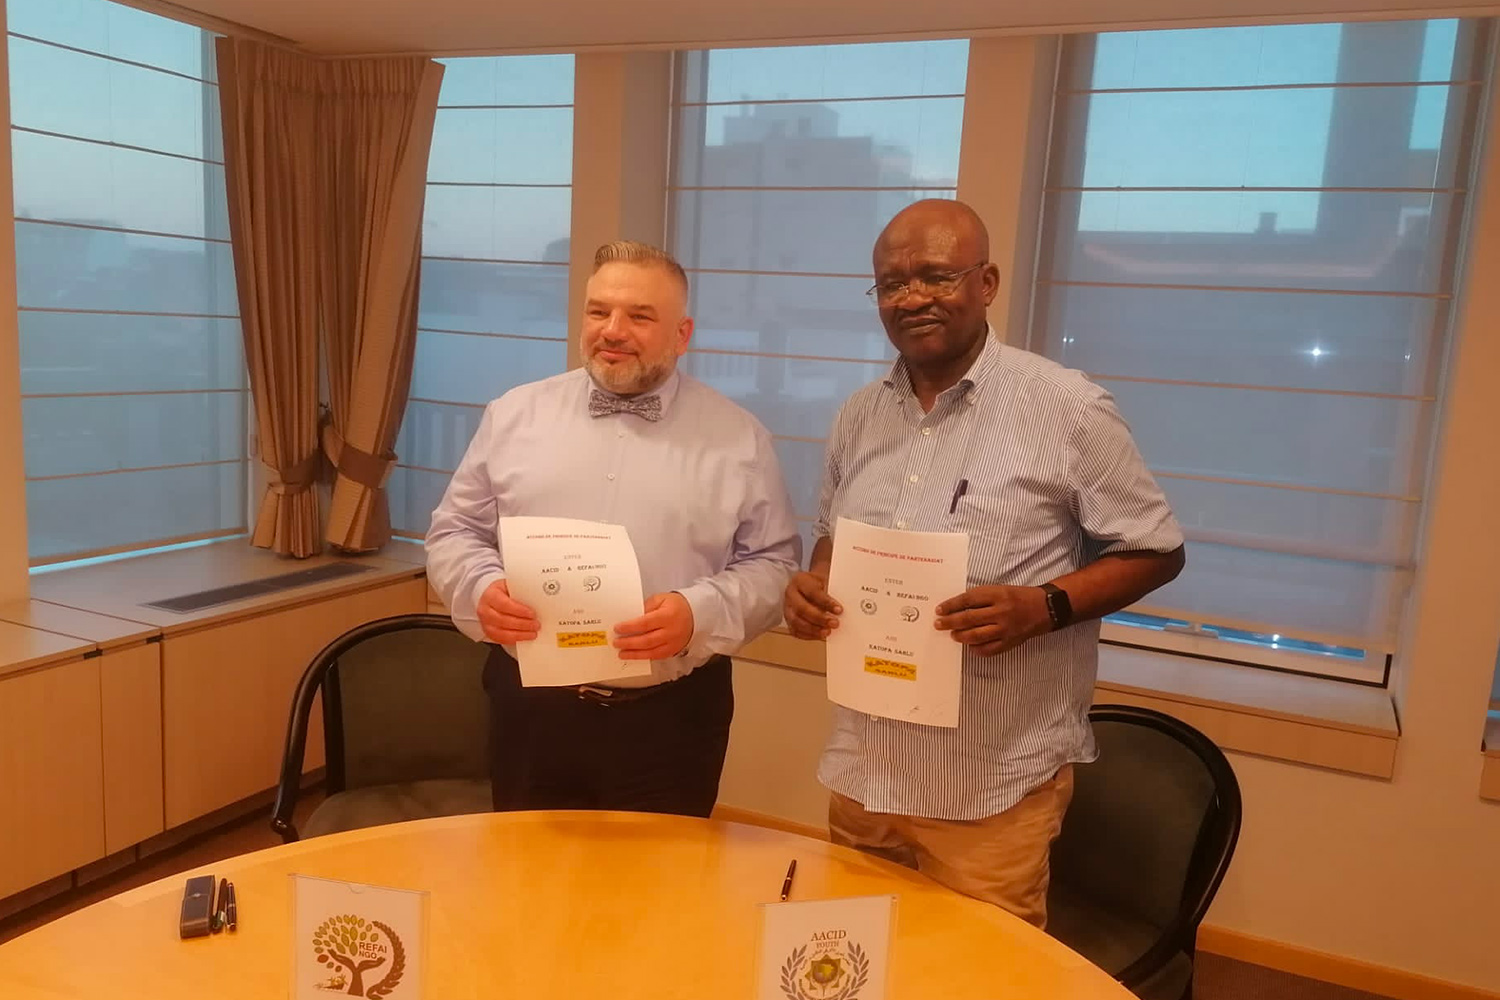 18 of June 2021 signing the Partnership Agreement for Gold Mine in DRC